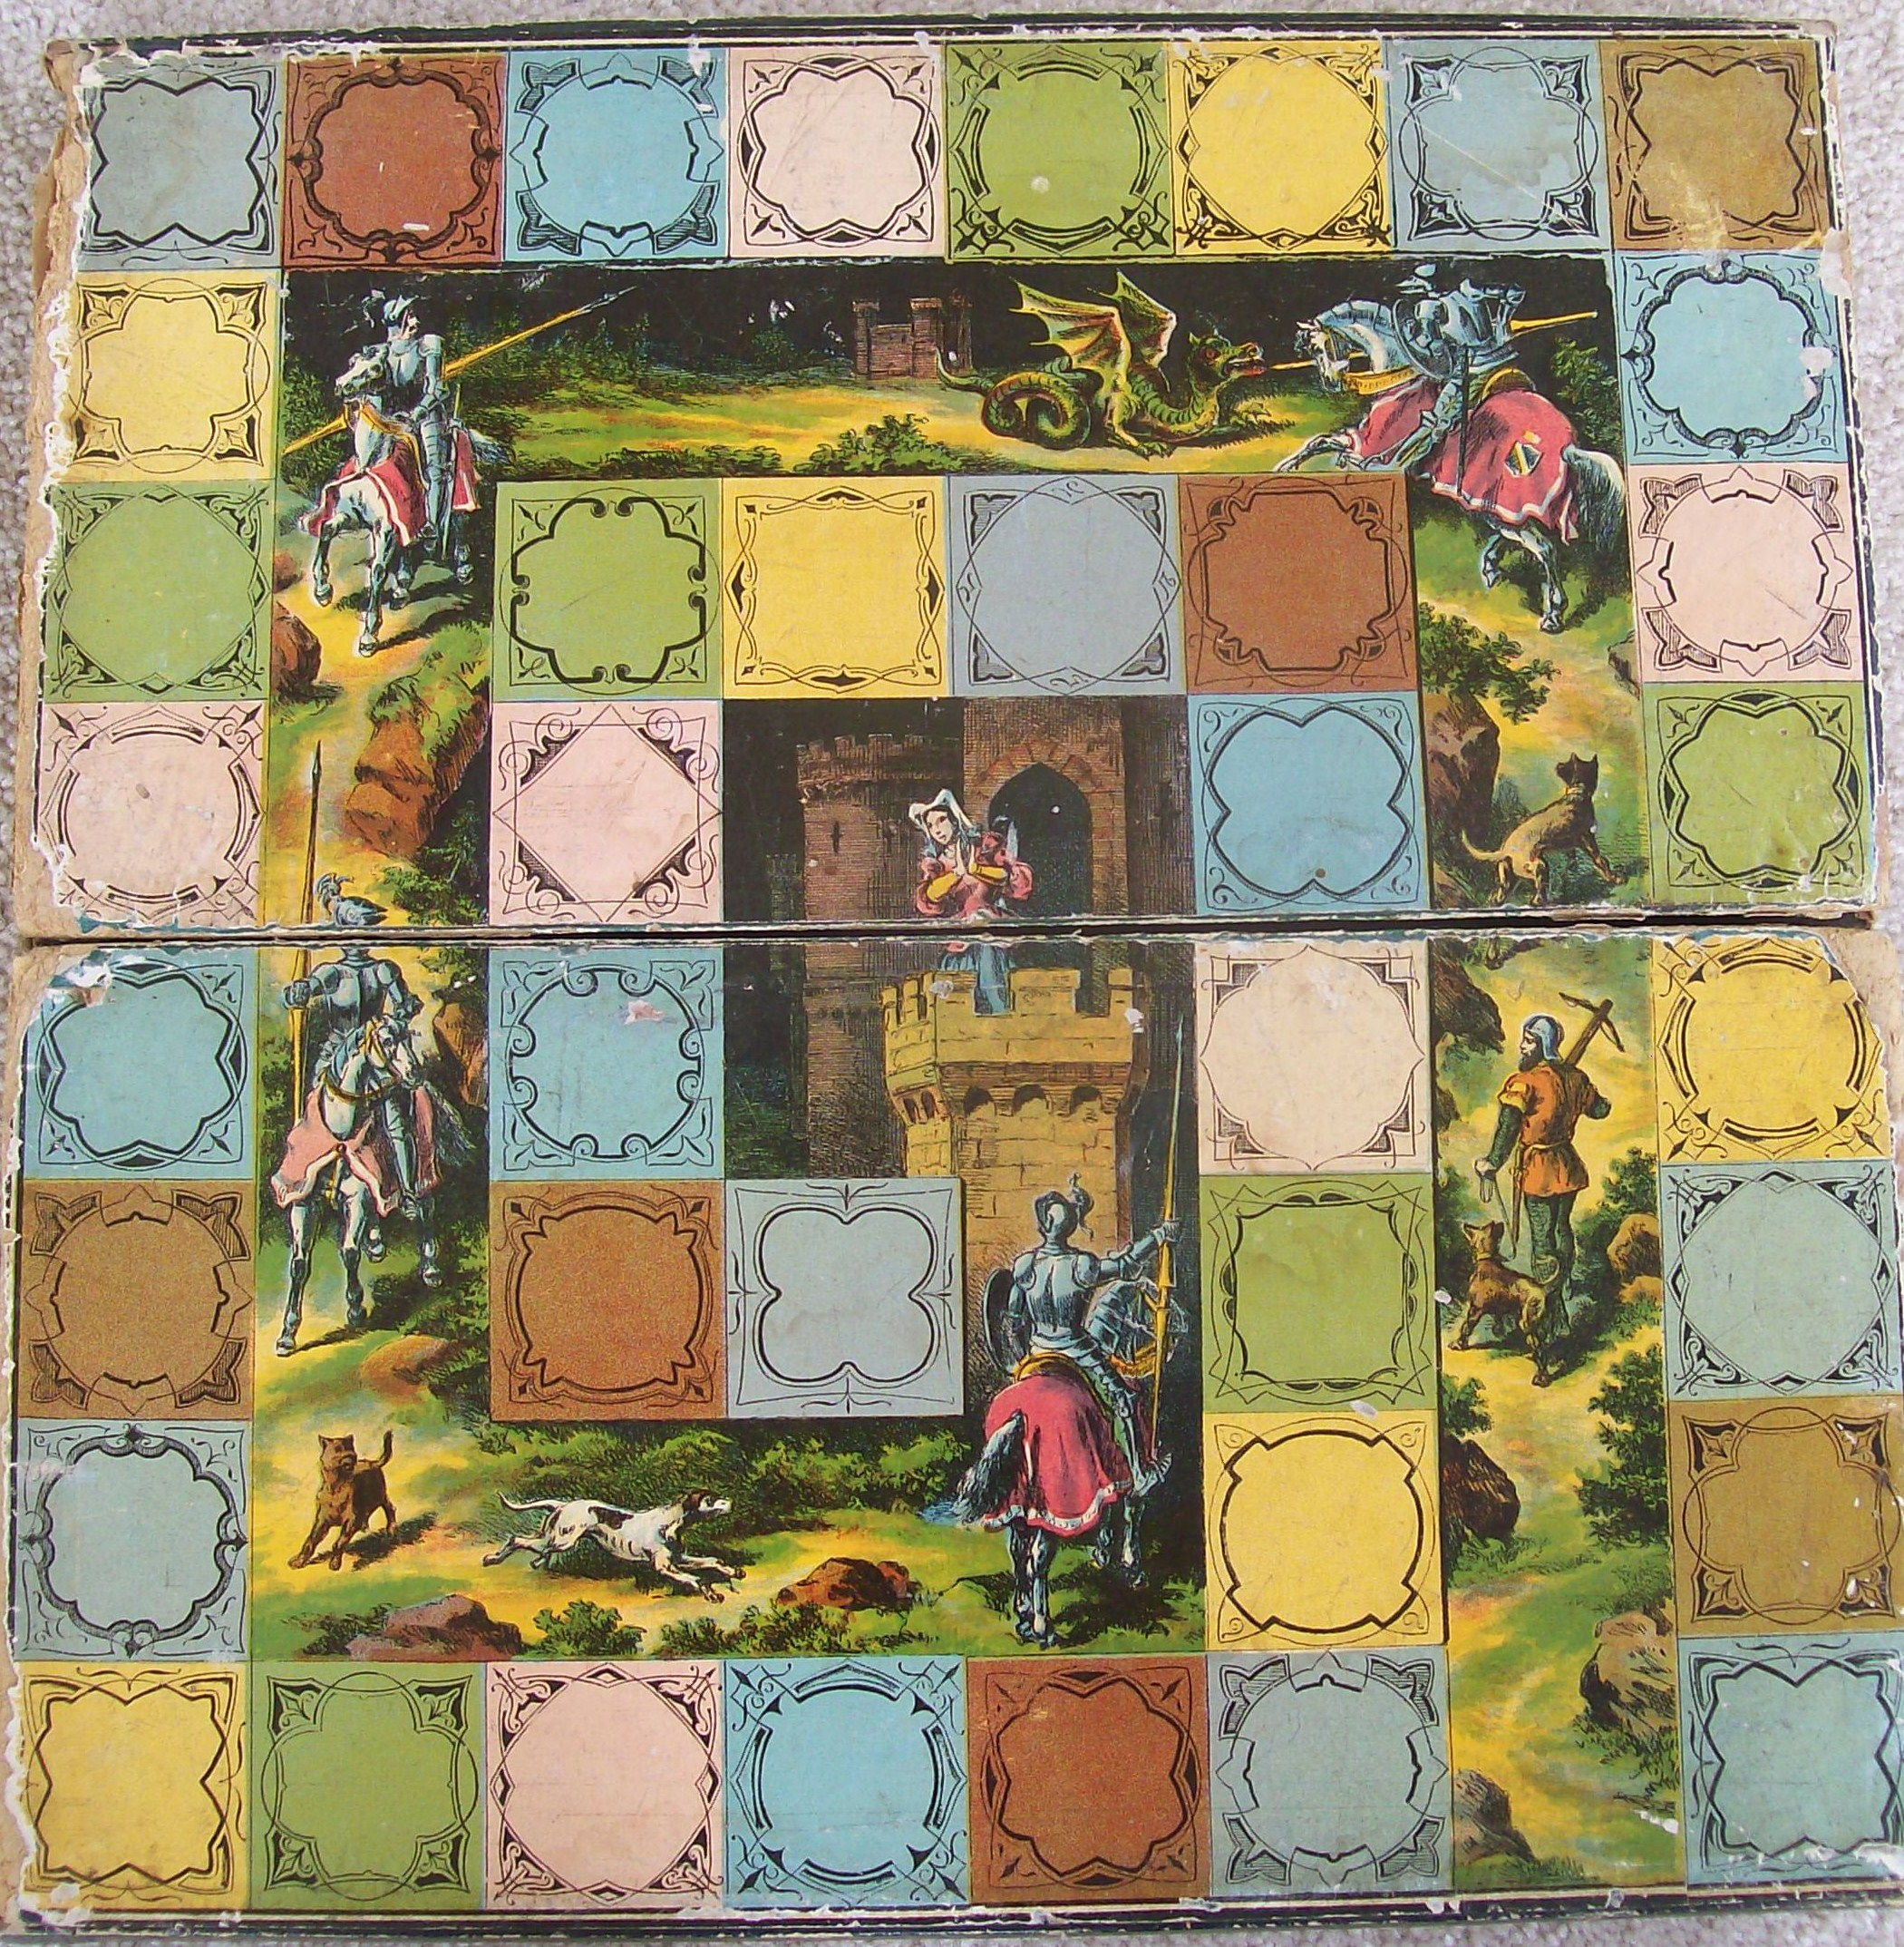 1875 mcloughlin bros. game captive princess